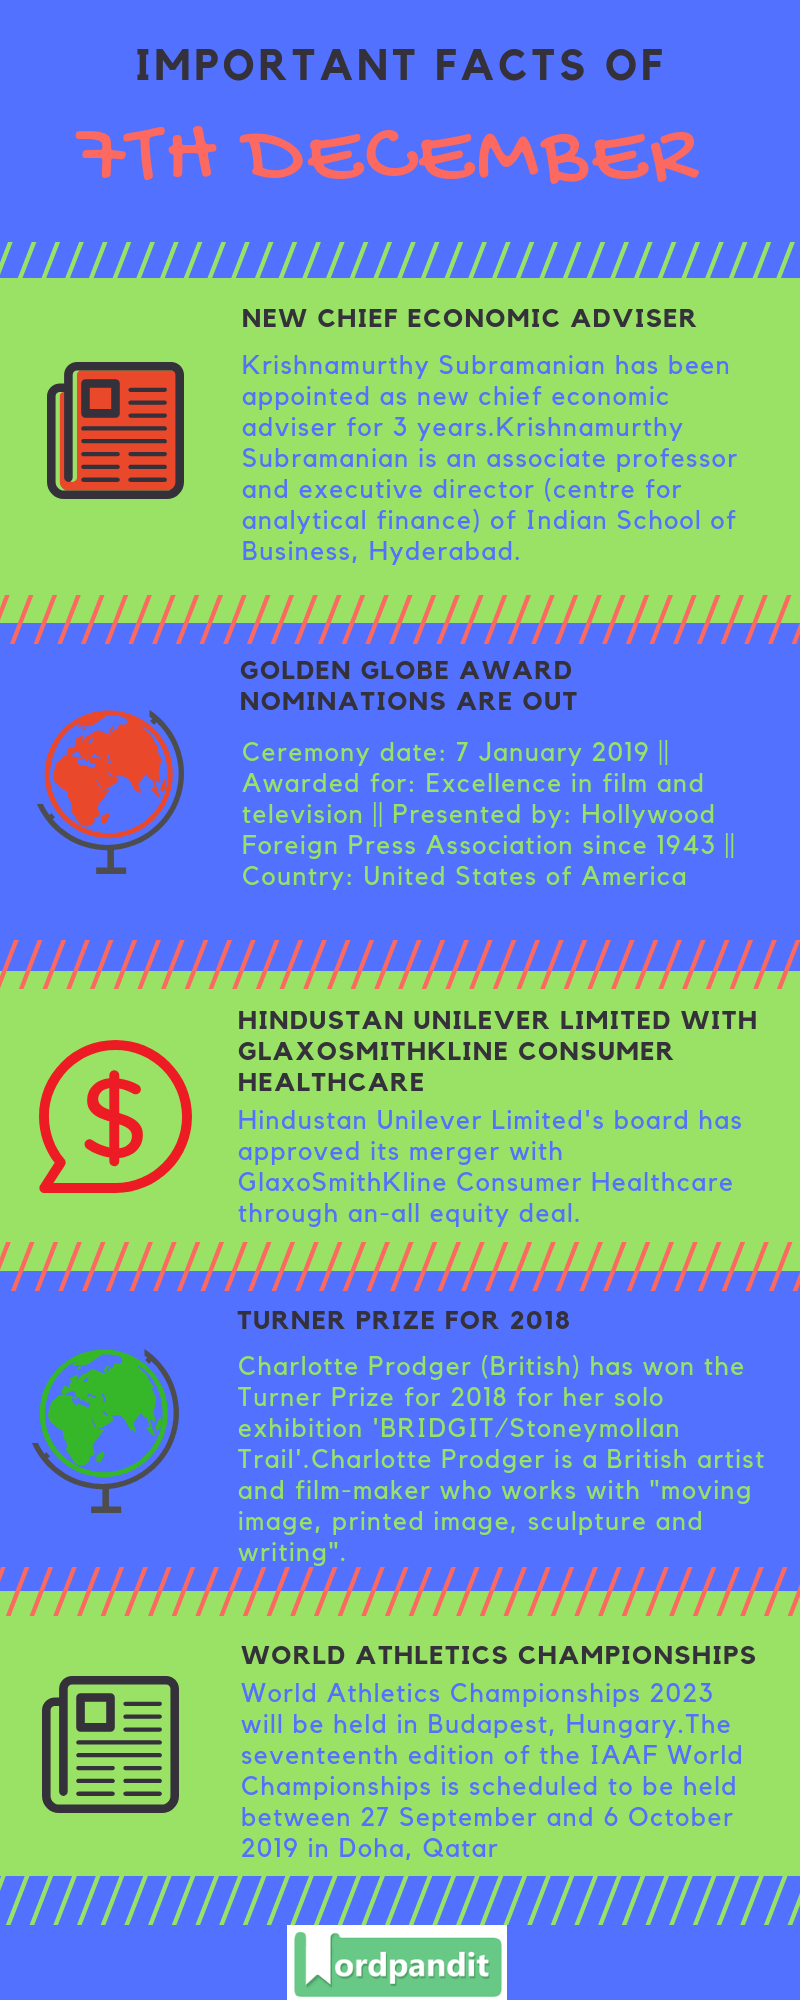 Daily Current Affairs 7 December 2018 Current Affairs Quiz 7 December 2018 Current Affairs Infographic